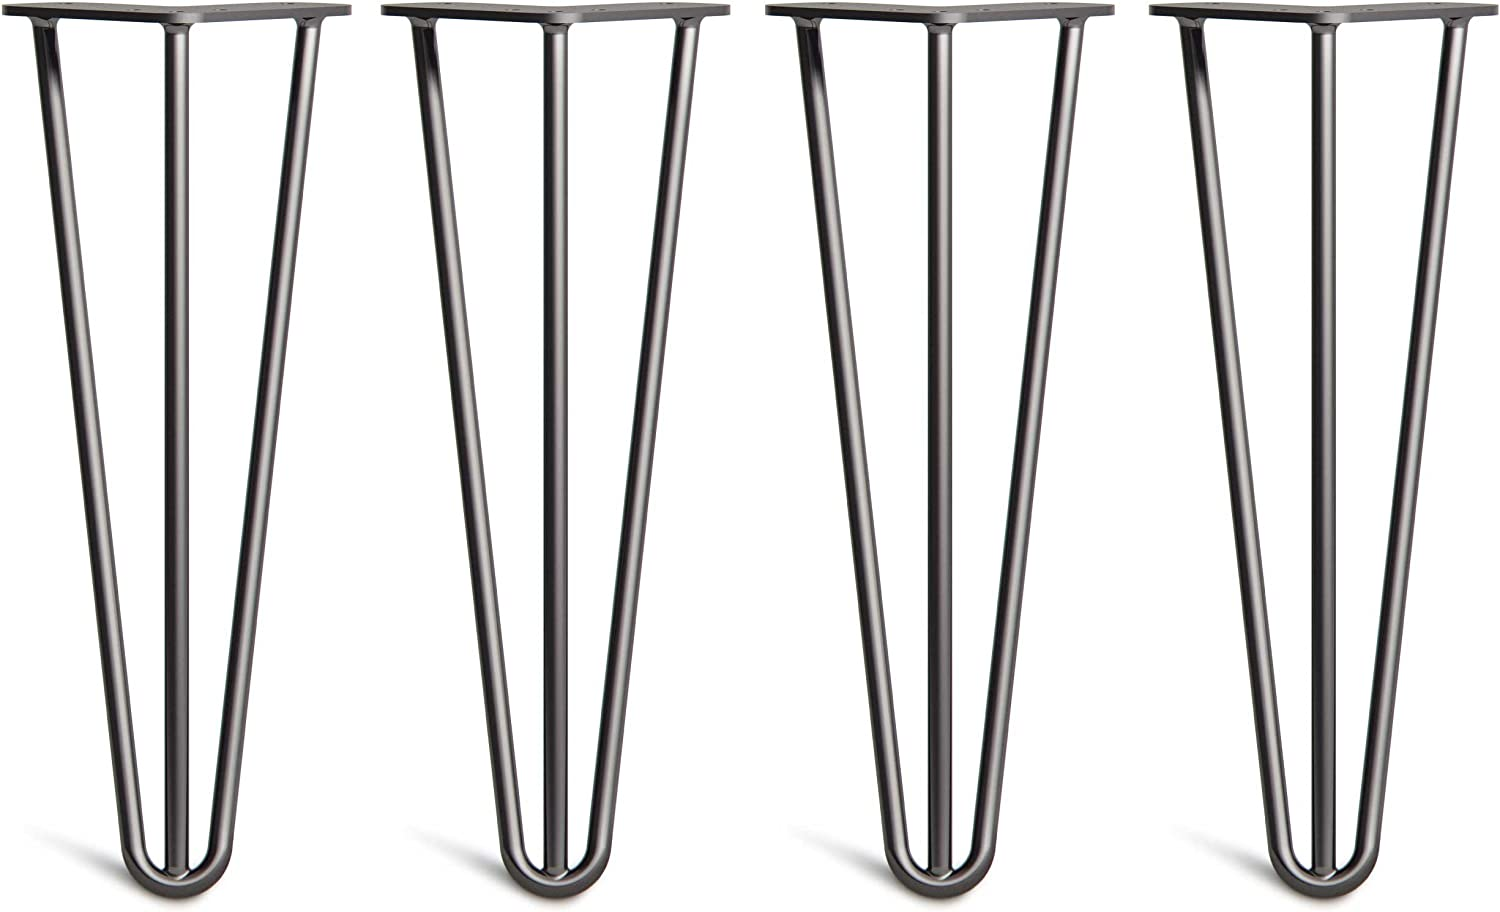 Superior Double Weld Steel Construction with Free Screws Build Guide /& Protector Feet HLC 4 x Hairpin Table Legs All Finishes Classic 3//8 4, 2 Rod, Black Worth $10 4 to 34